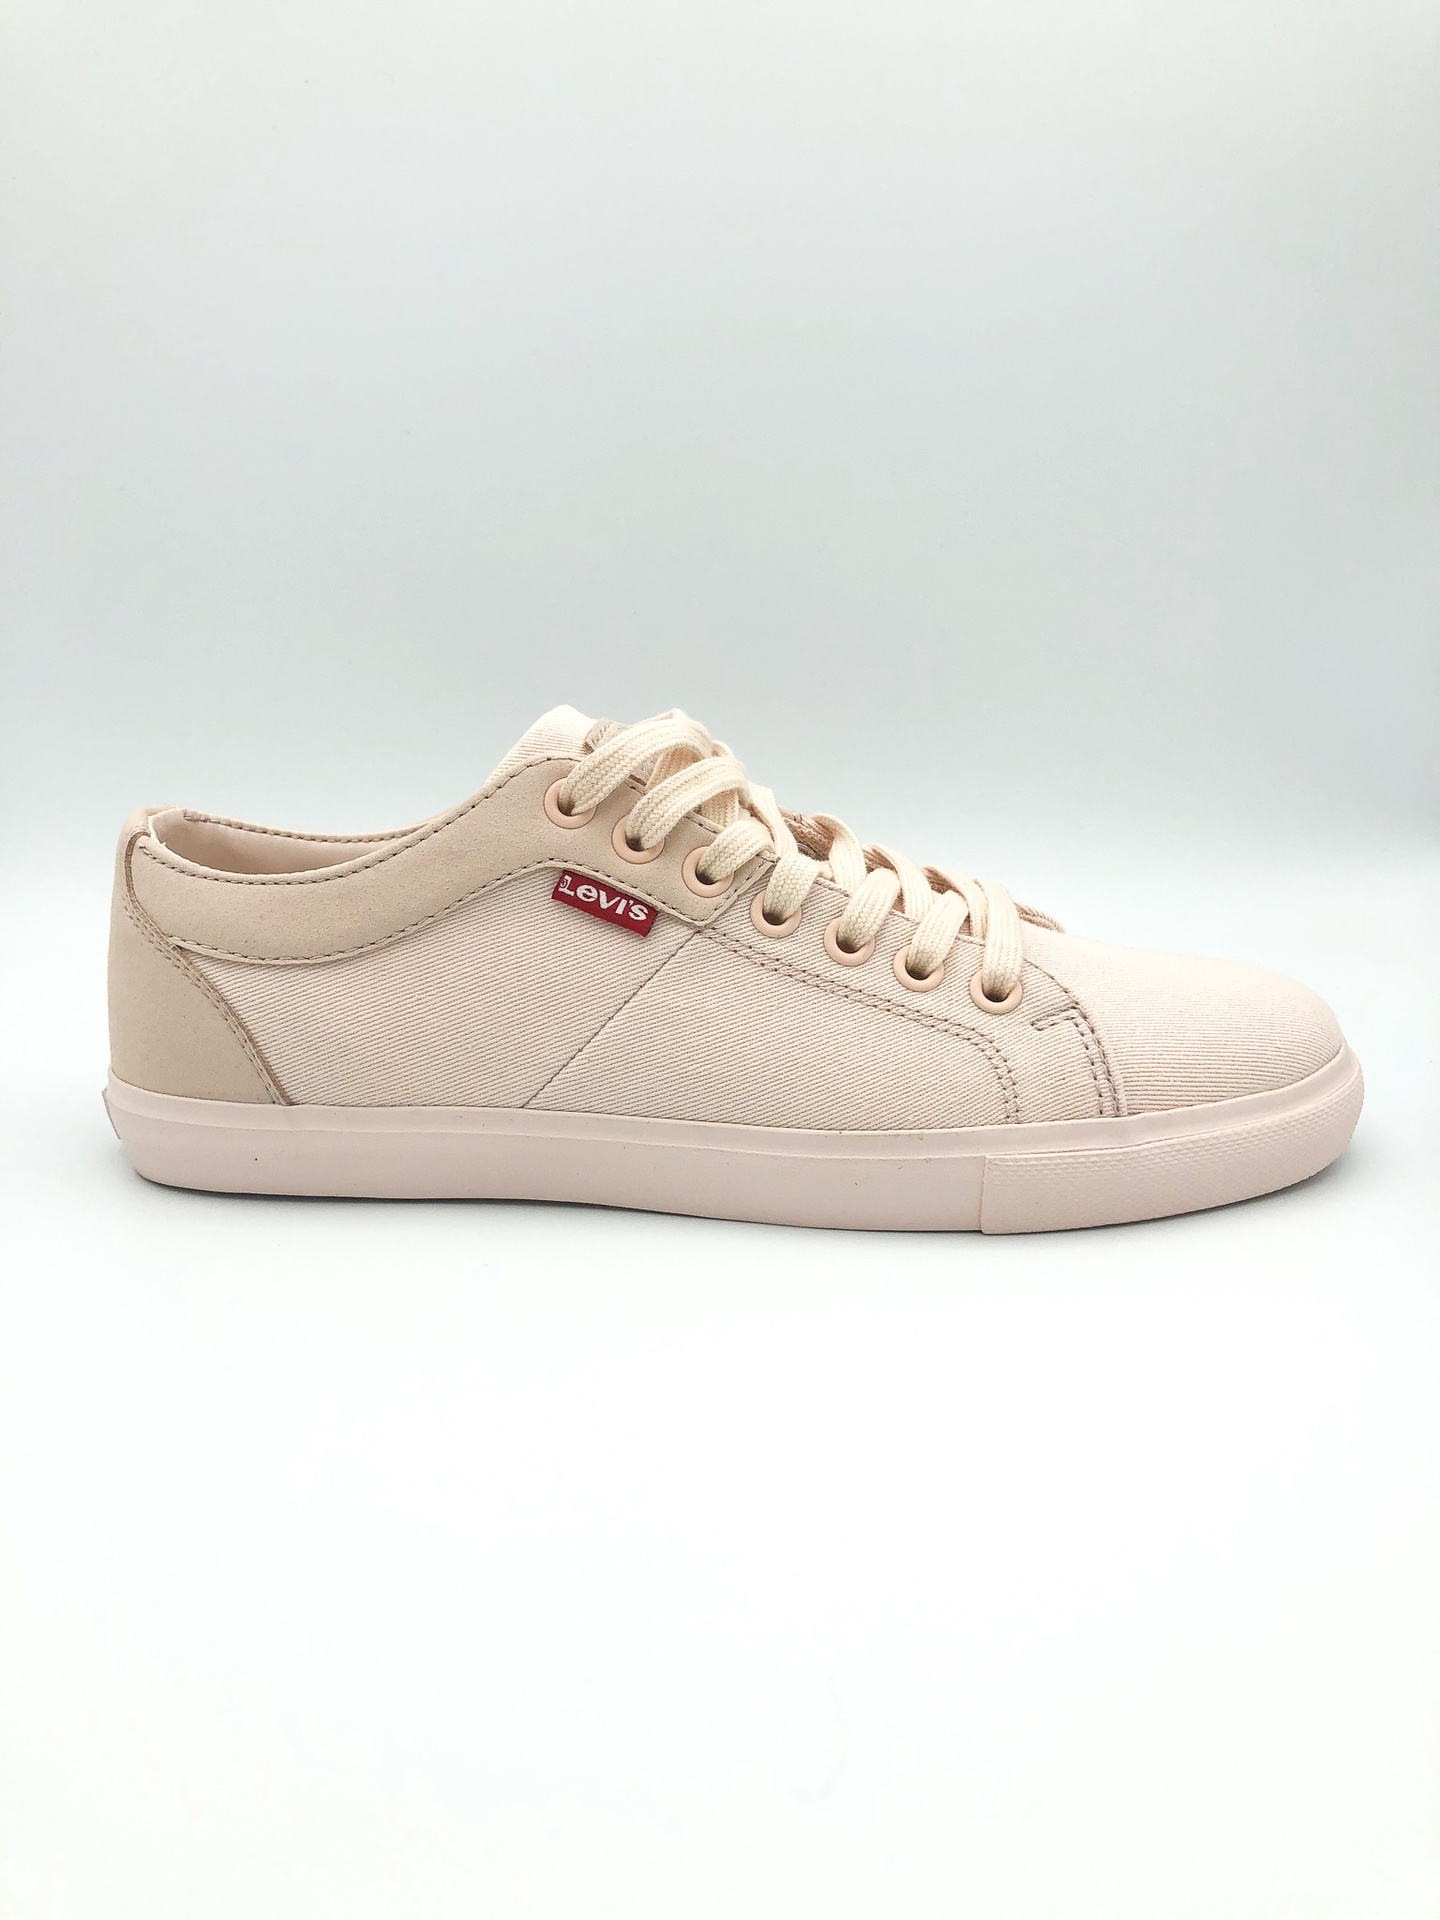 LEVI'S - WOODS W IN LIGHT PINK